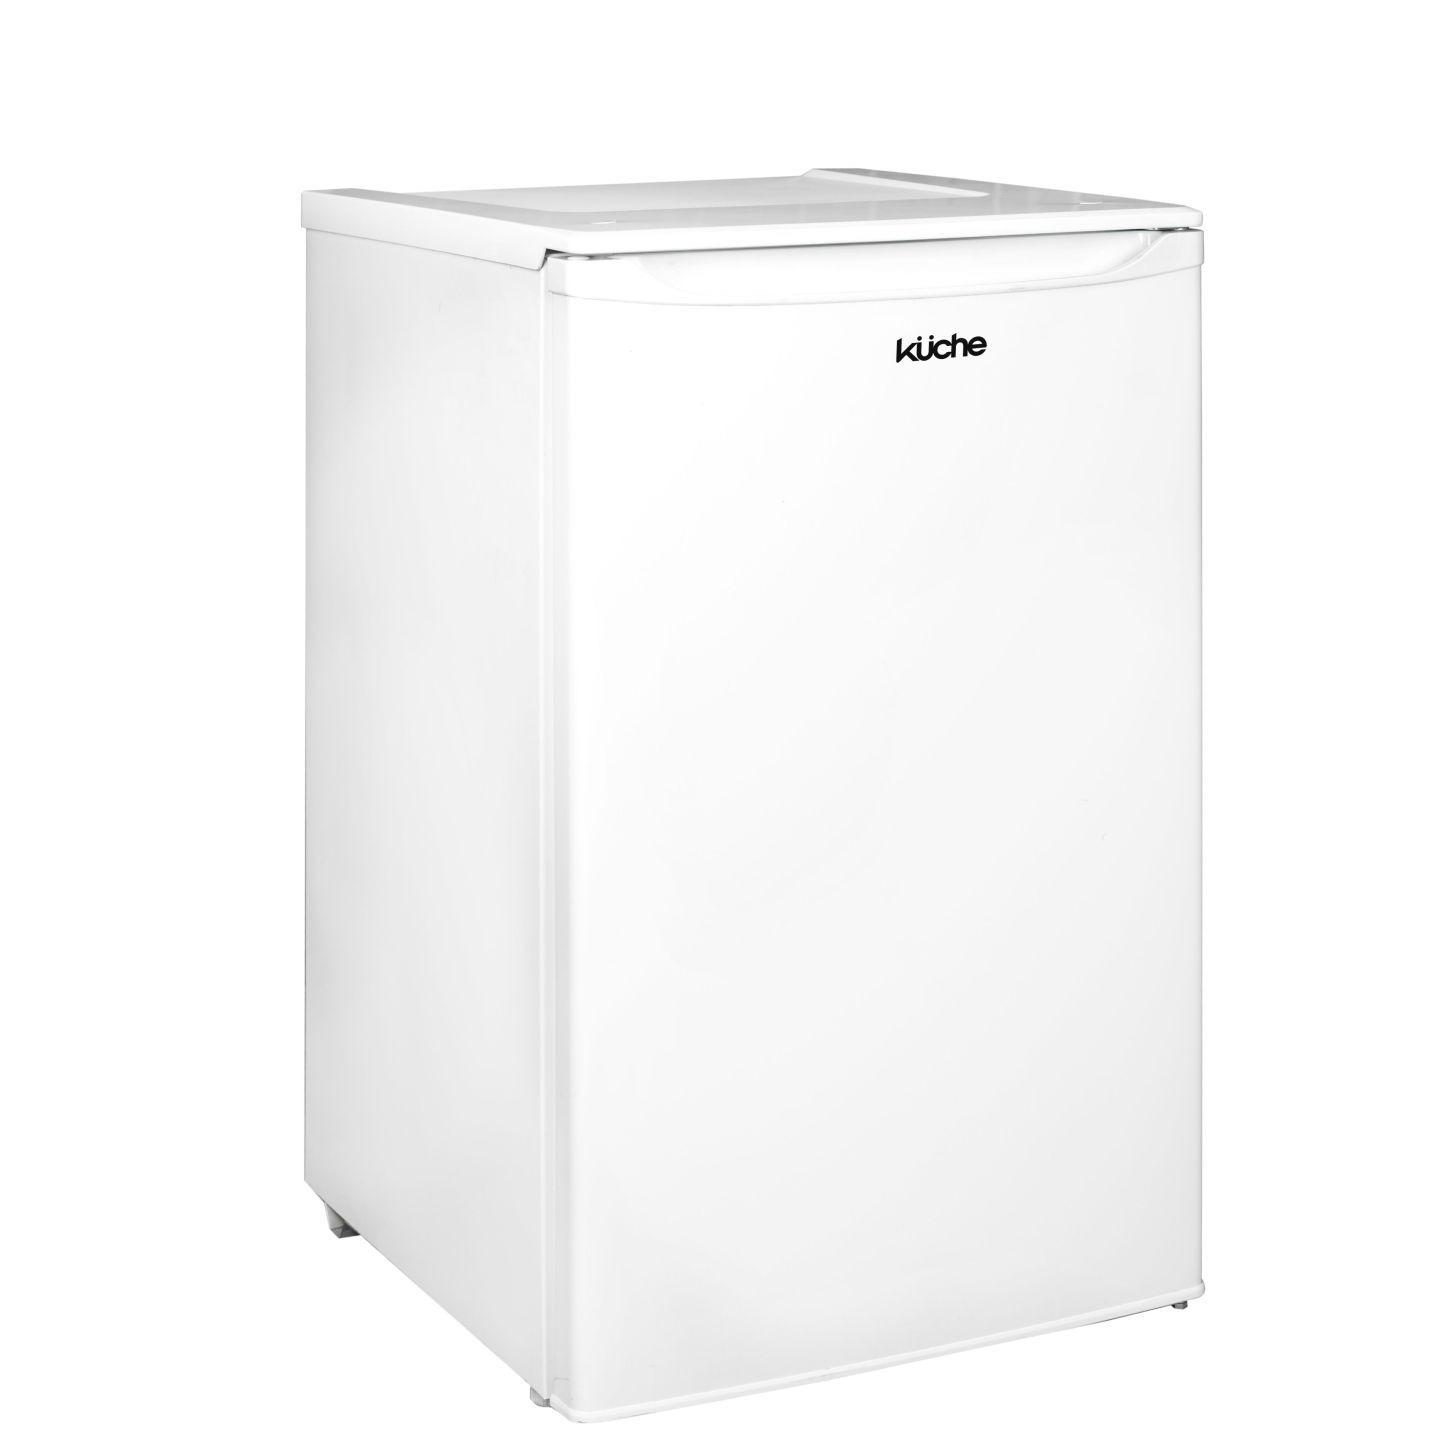 Kuche Mini Fridge Comparison Of 10 Refrigerators Reviews Ratings And Best